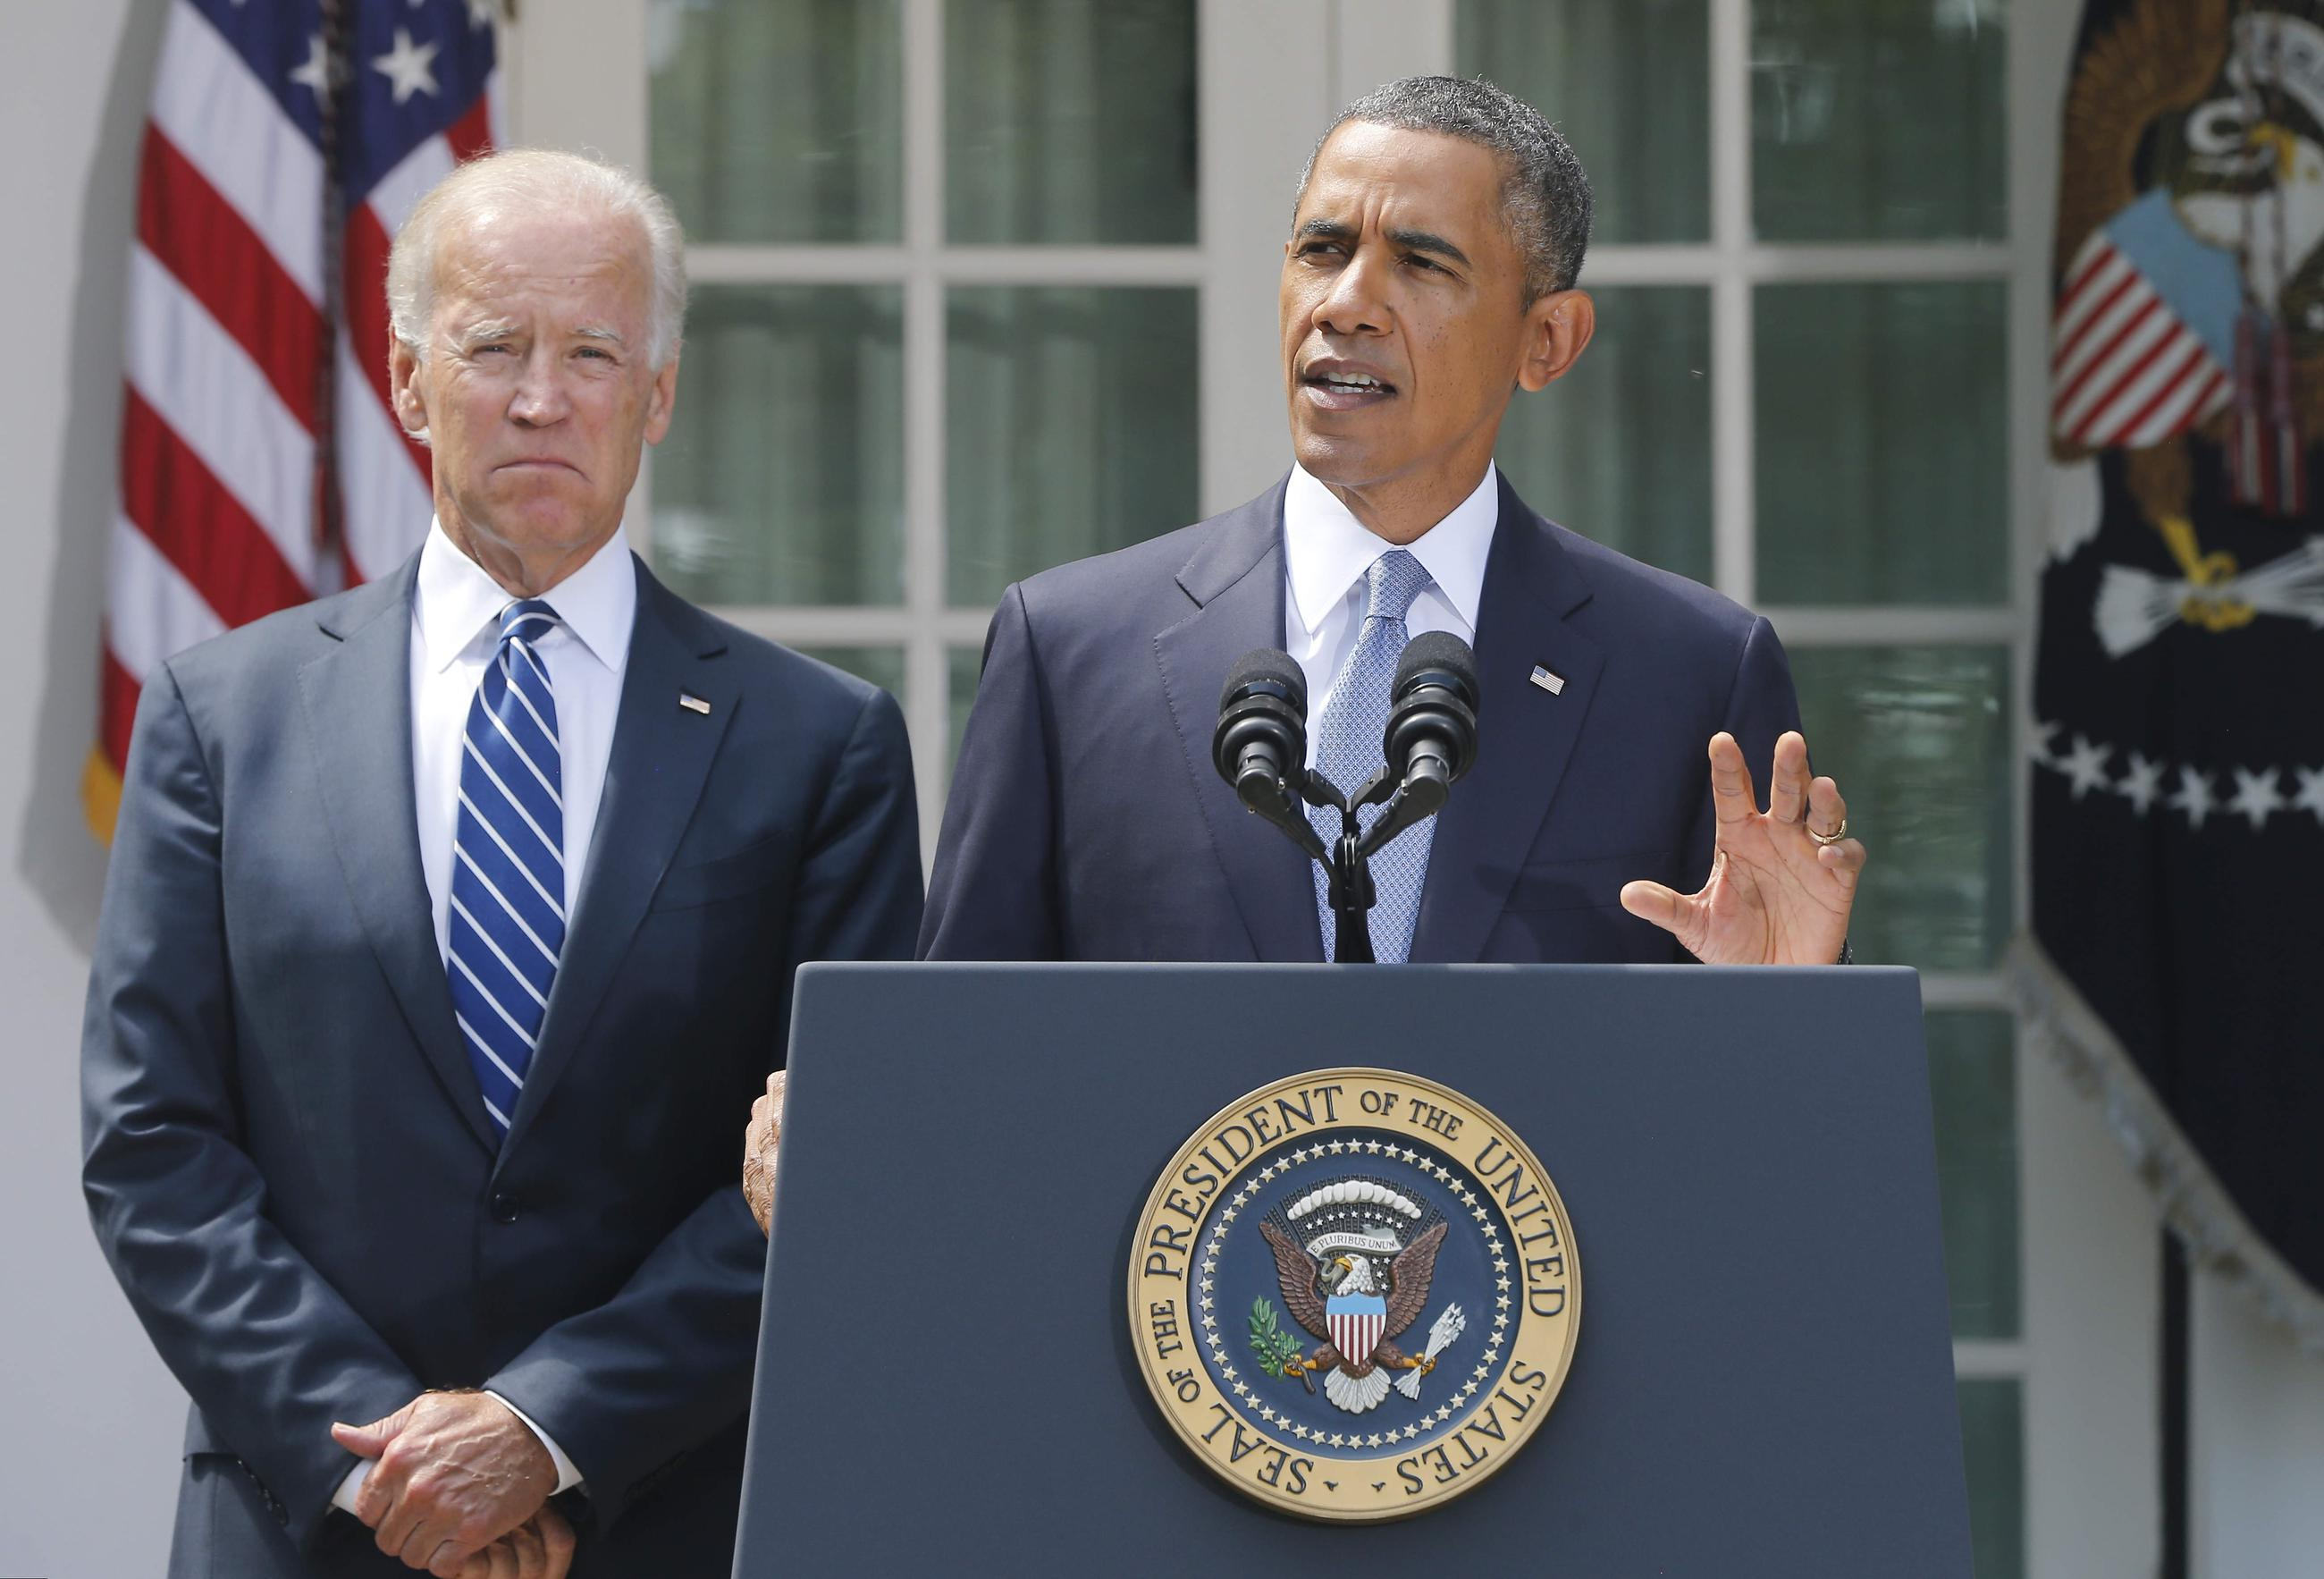 Obama Says He Doesn't Need Congress' Permission to Strike Syria, So Why is He Asking for It?